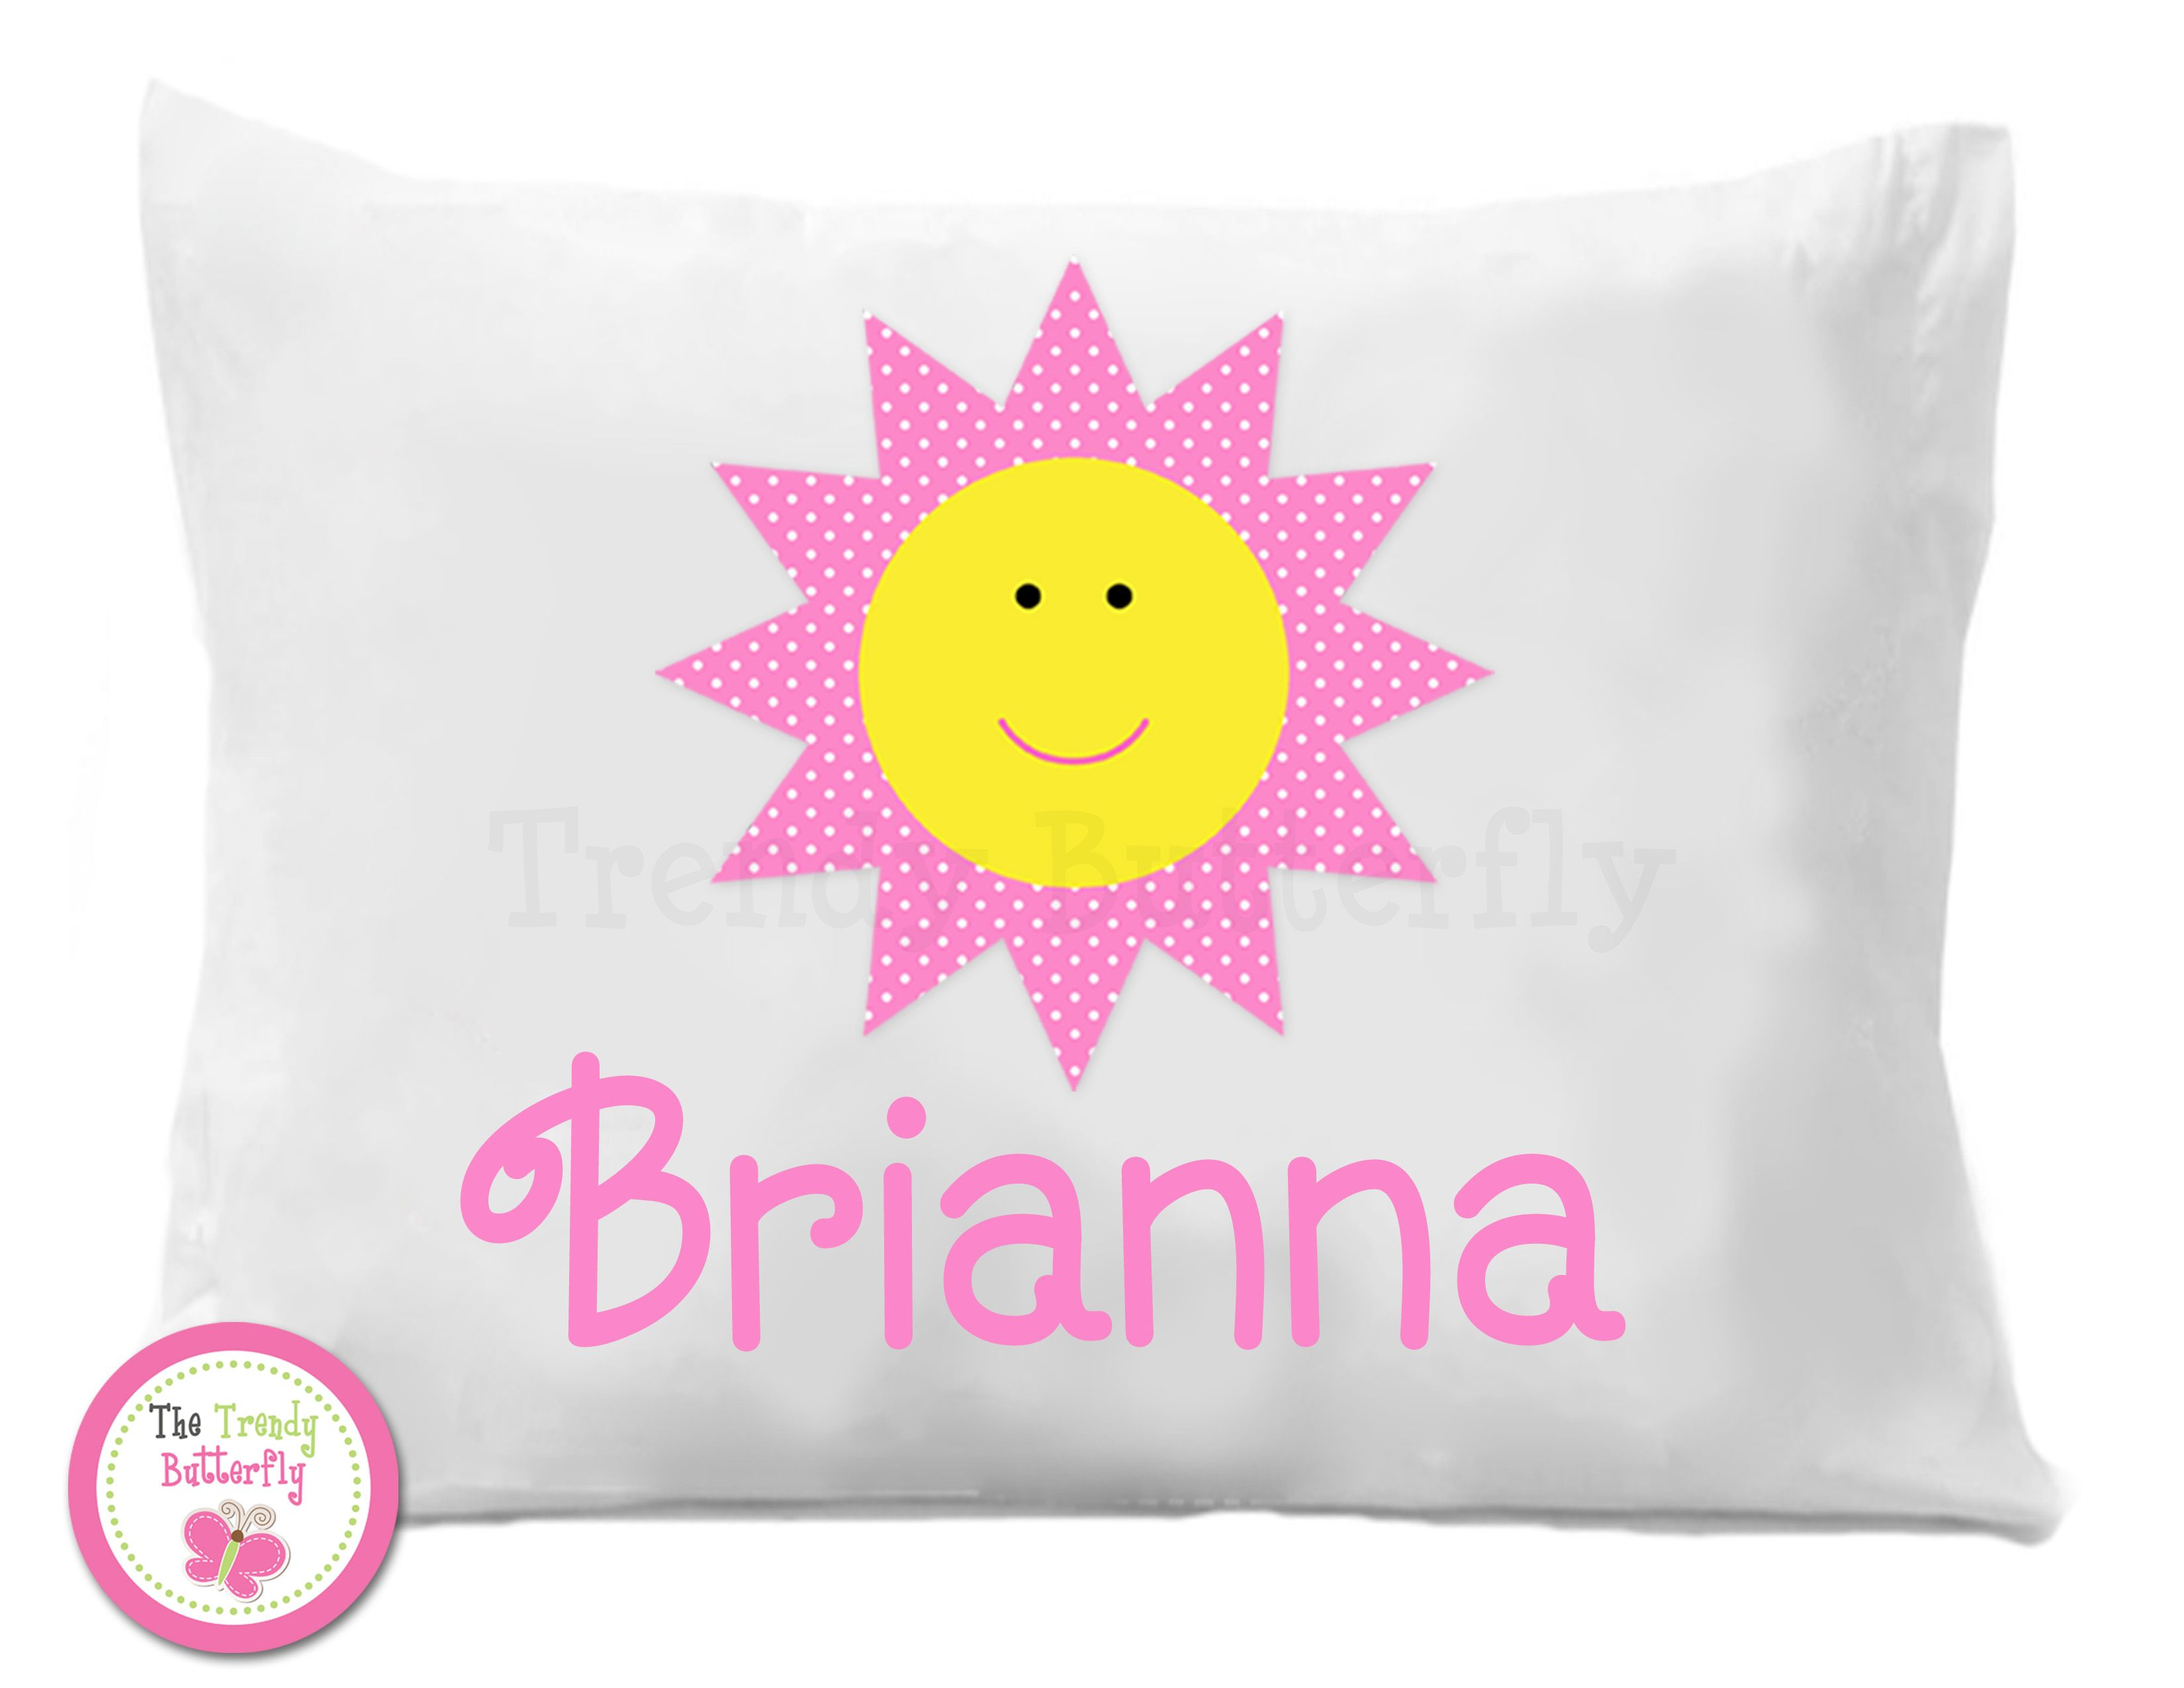 baby or cases blanket cover gallery photo personalised cushion christening covers customized pillow